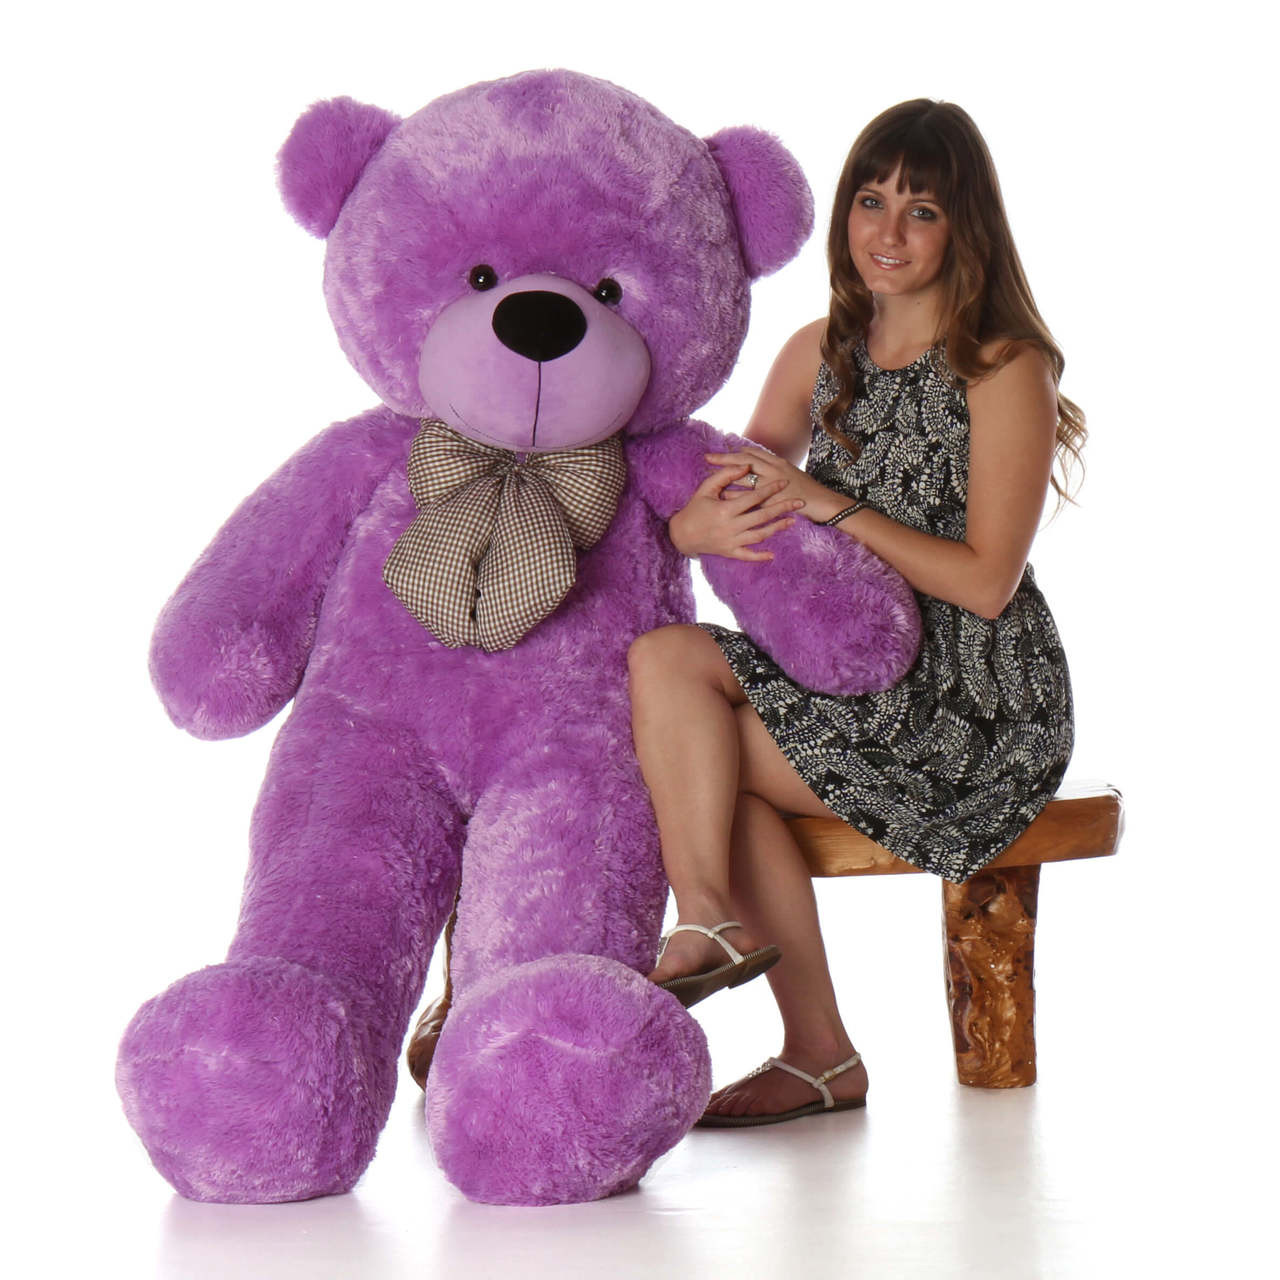 Deedee Cuddles 55 Lilac Huge Plush Teddy Bear Giant